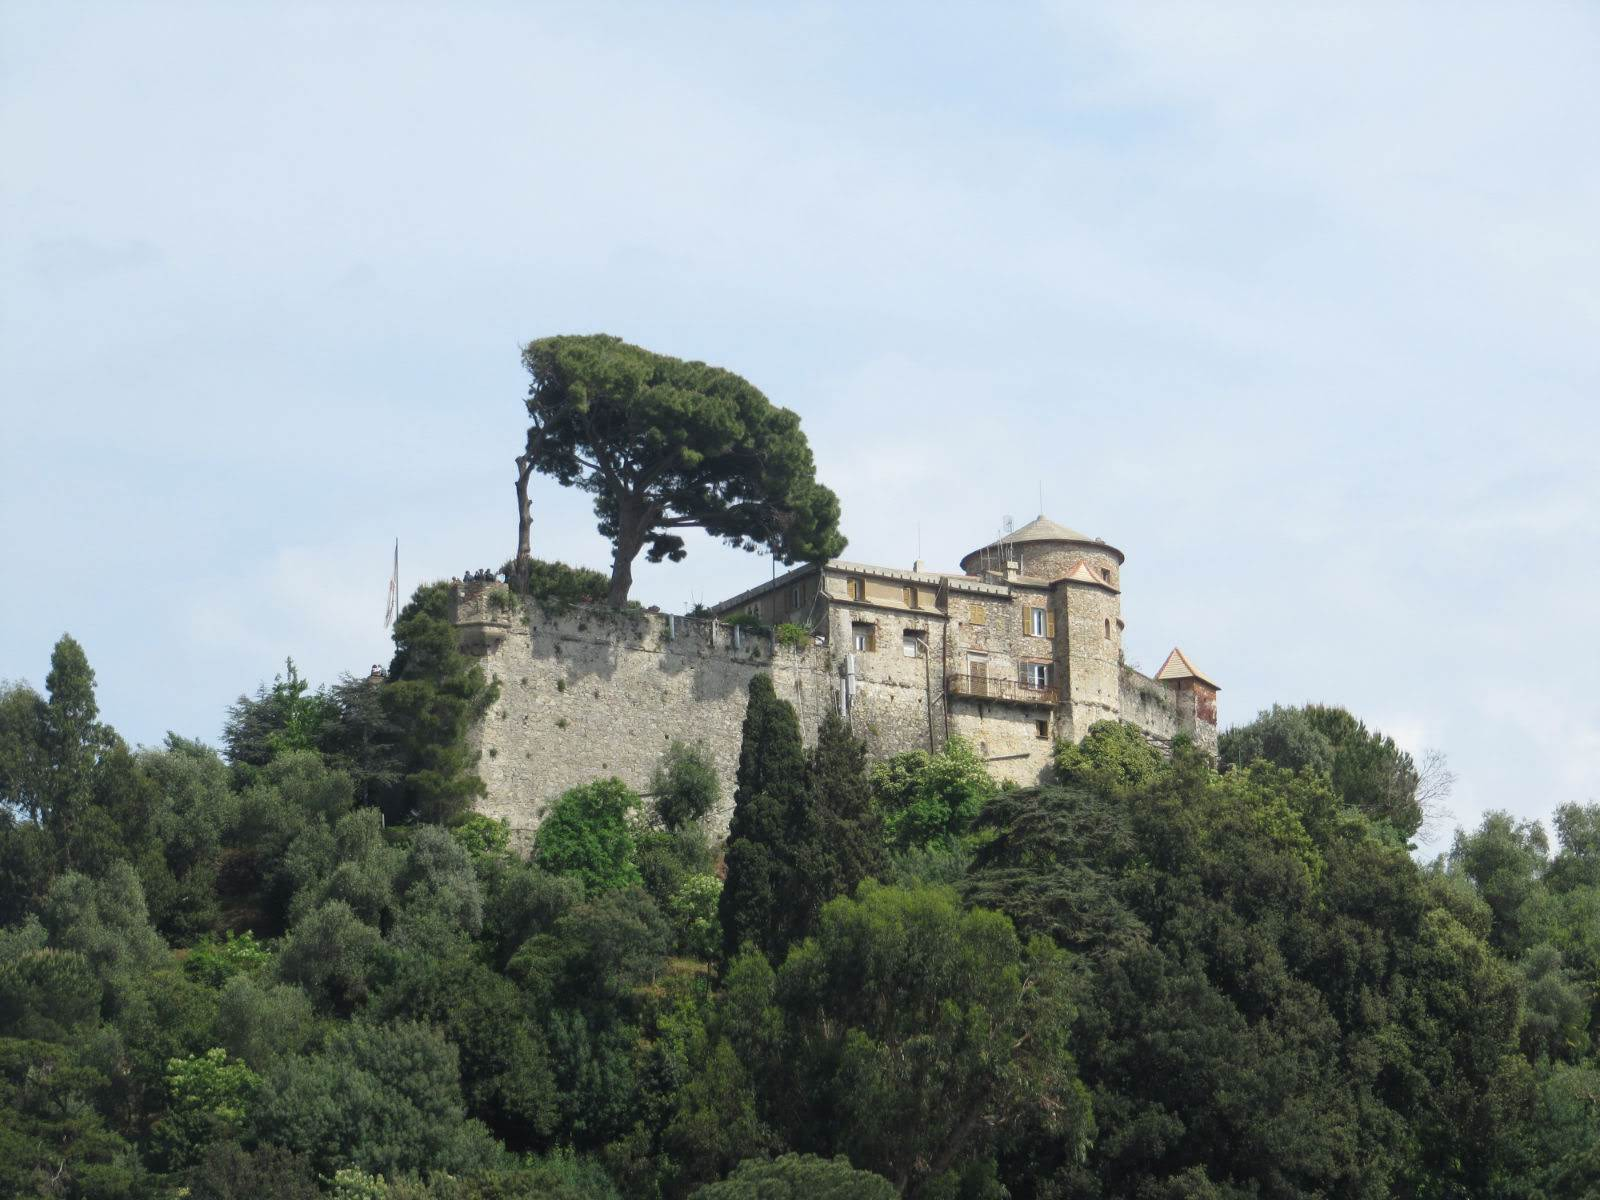 Girls Who Travel | A stone castle at the top of a wooded hill